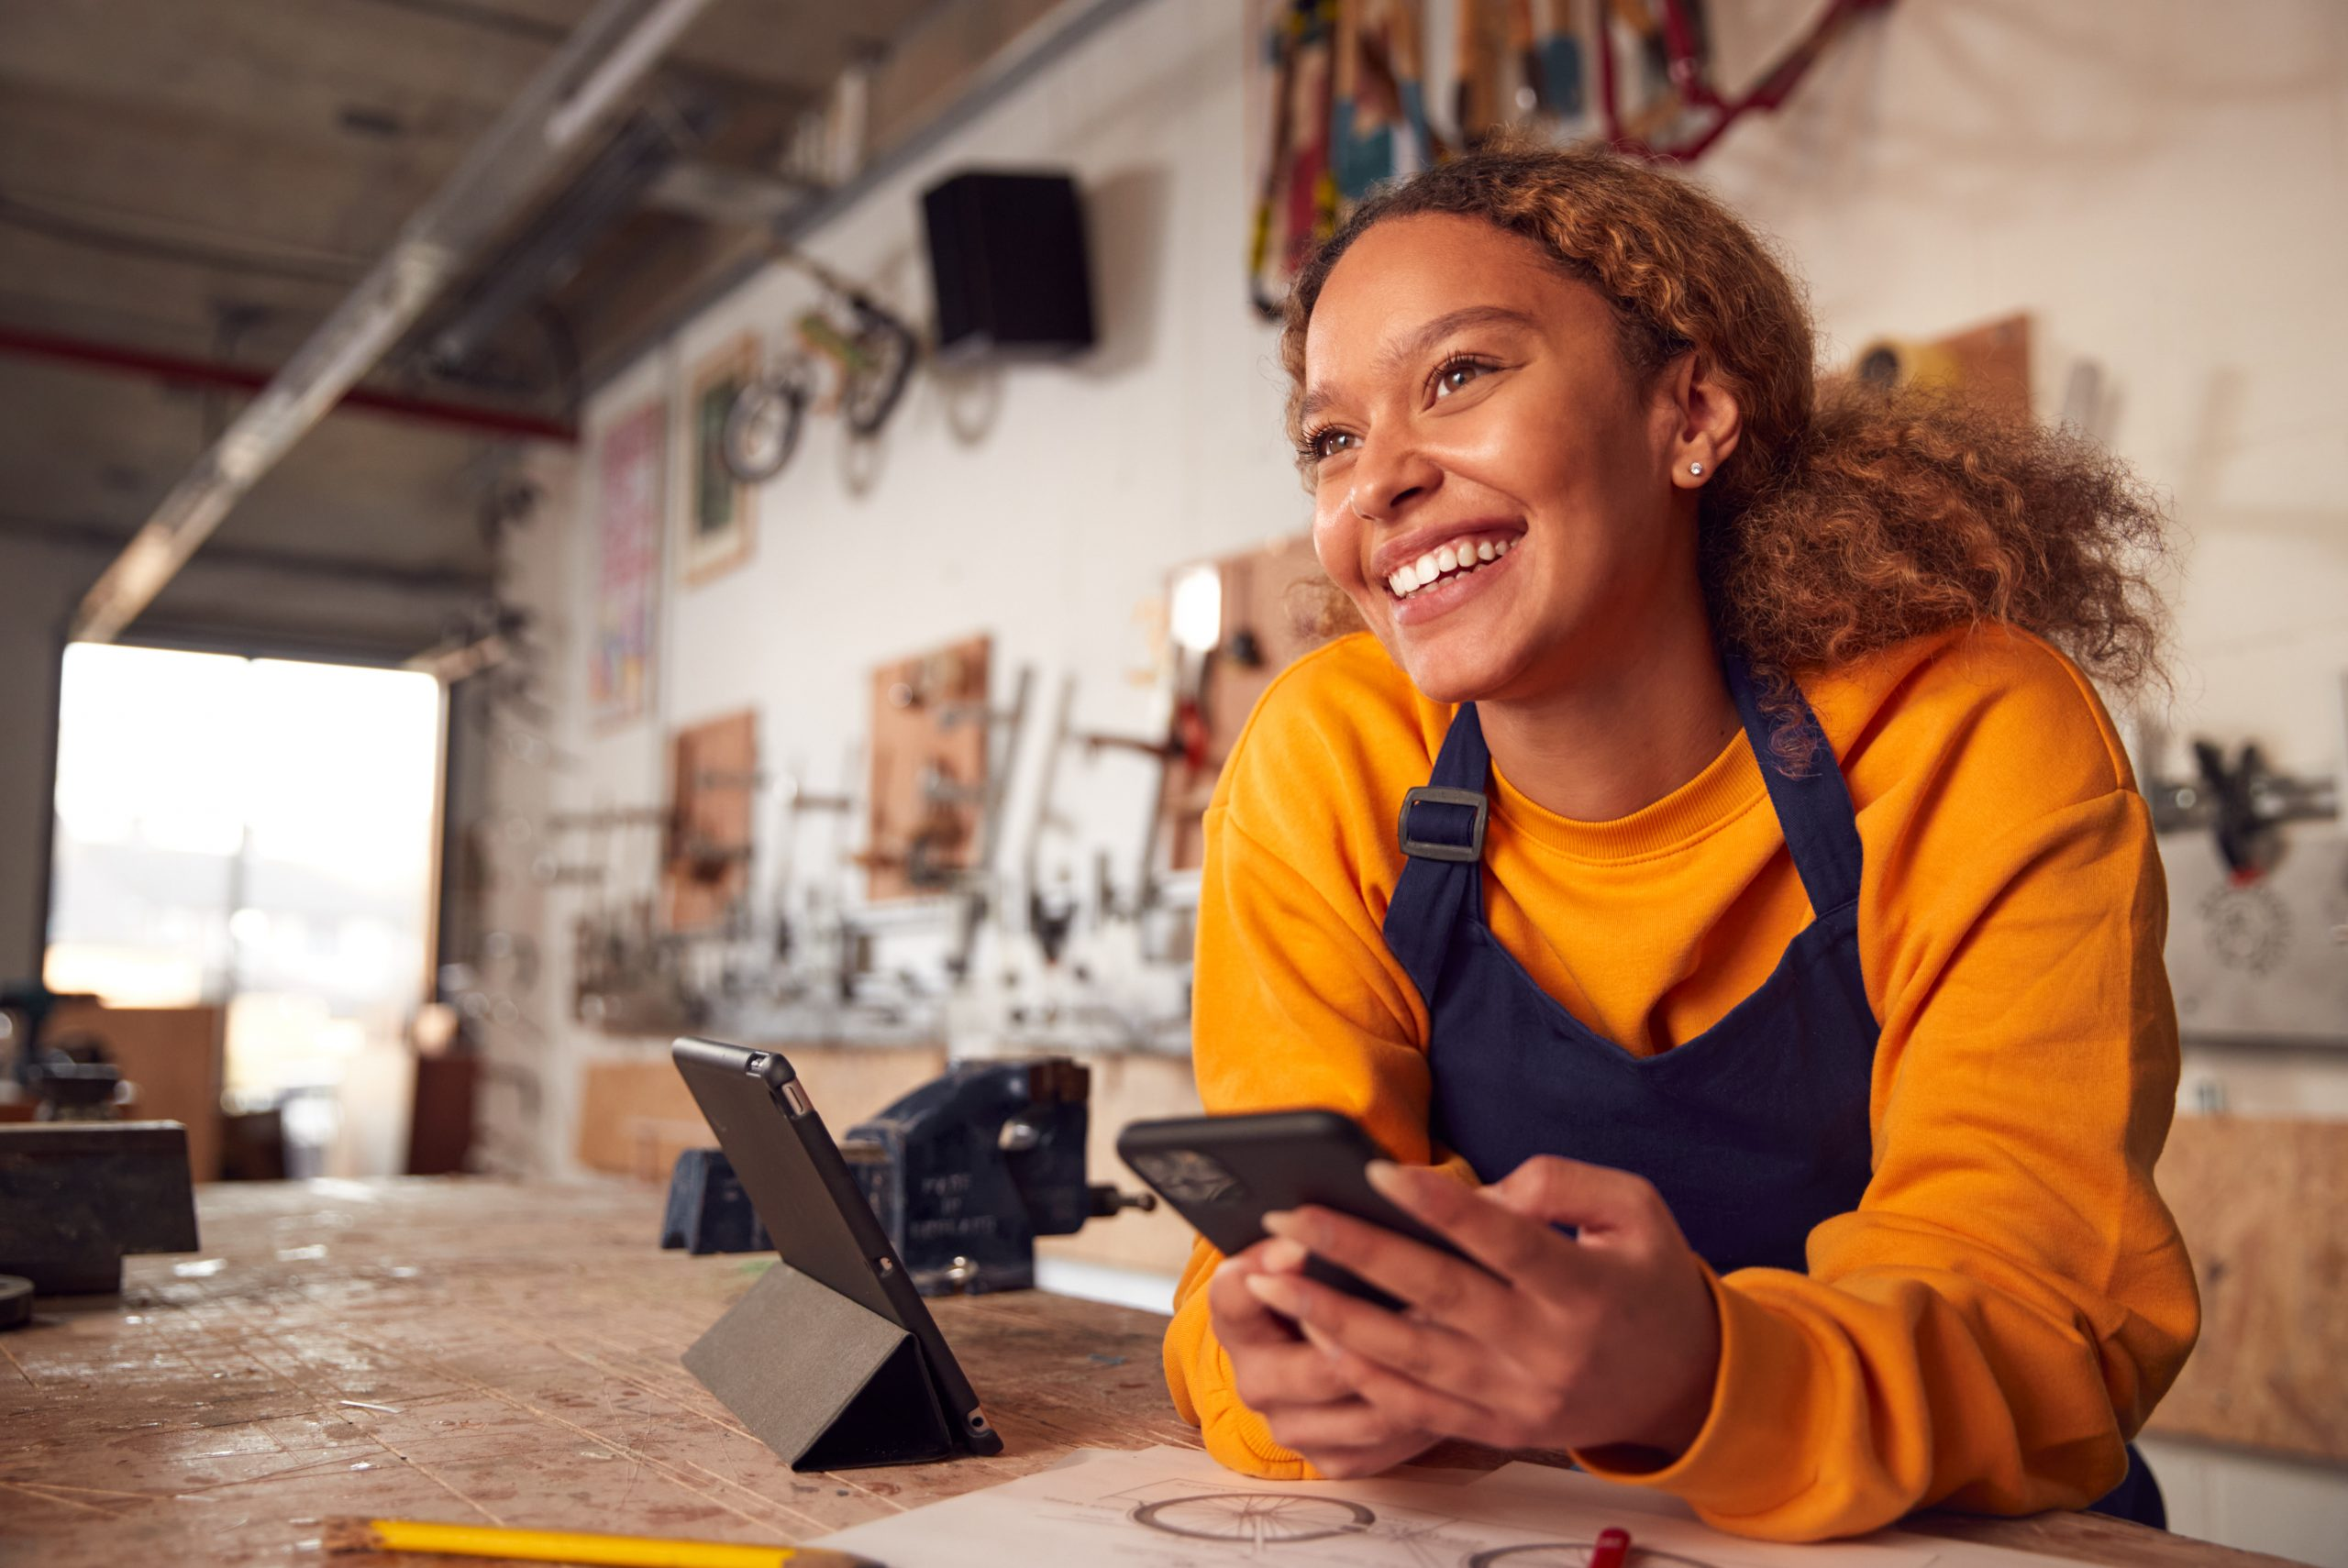 Woman-with-phone-smiling-looking-away-in-workshop